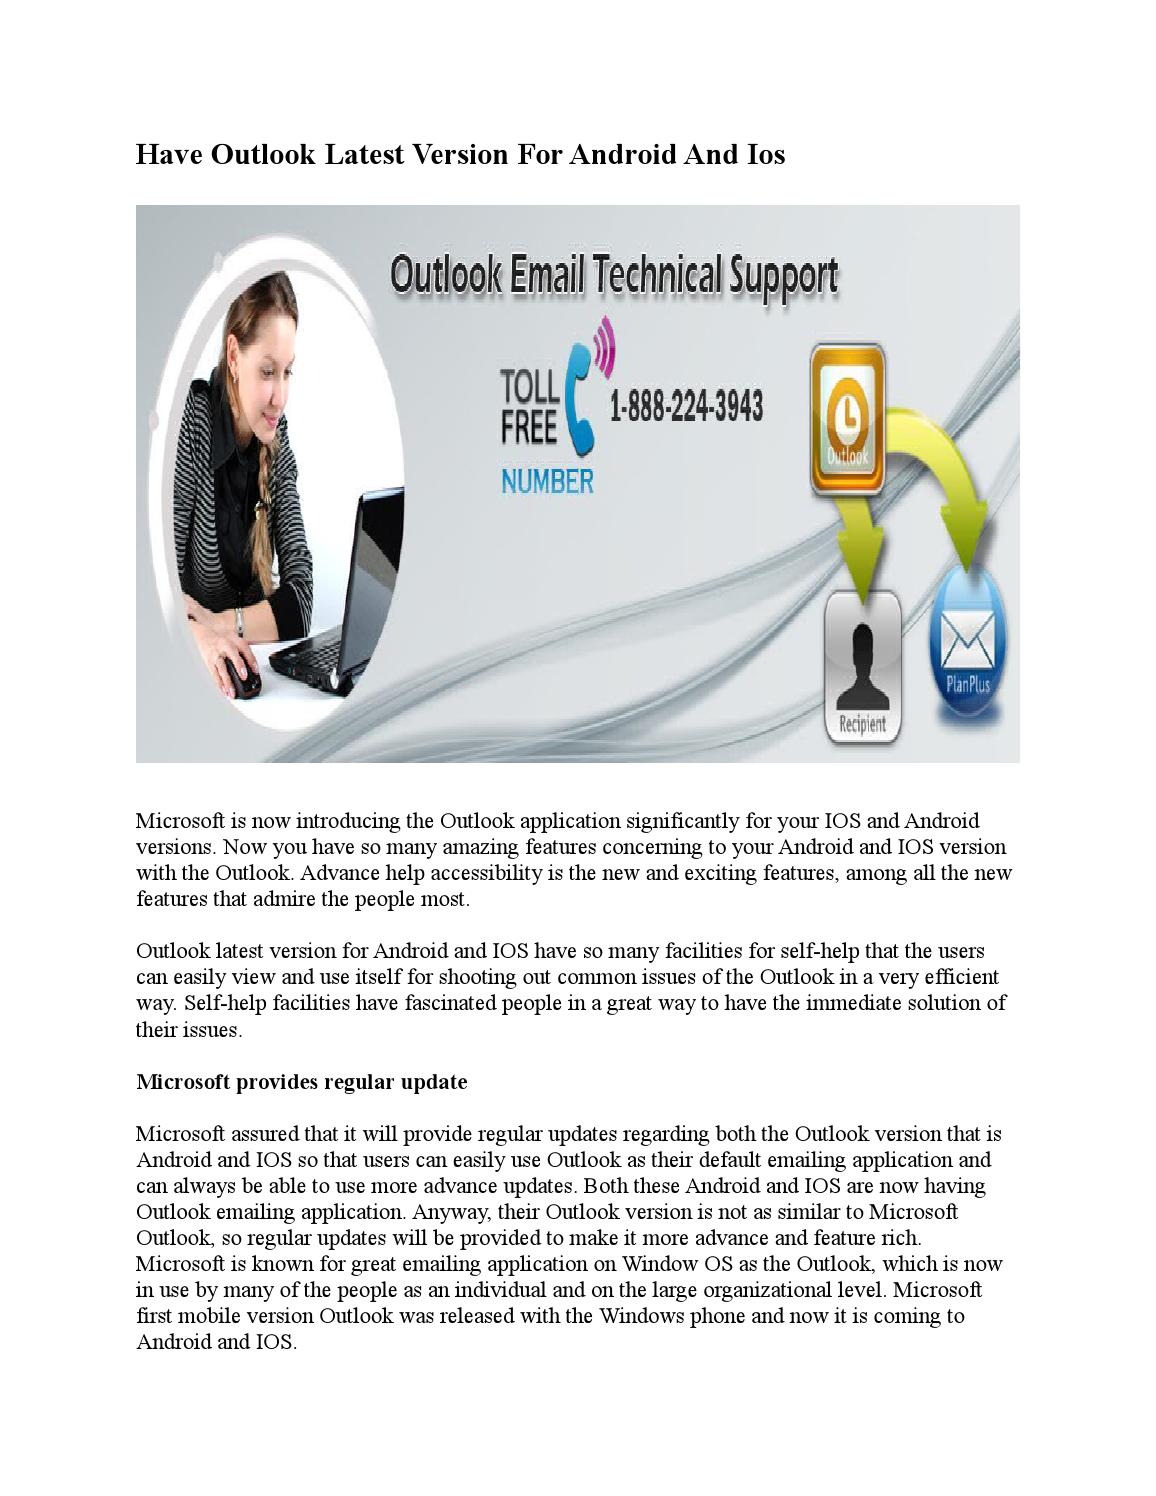 Have Outlook Latest Version For Android And ios by Joe Hary